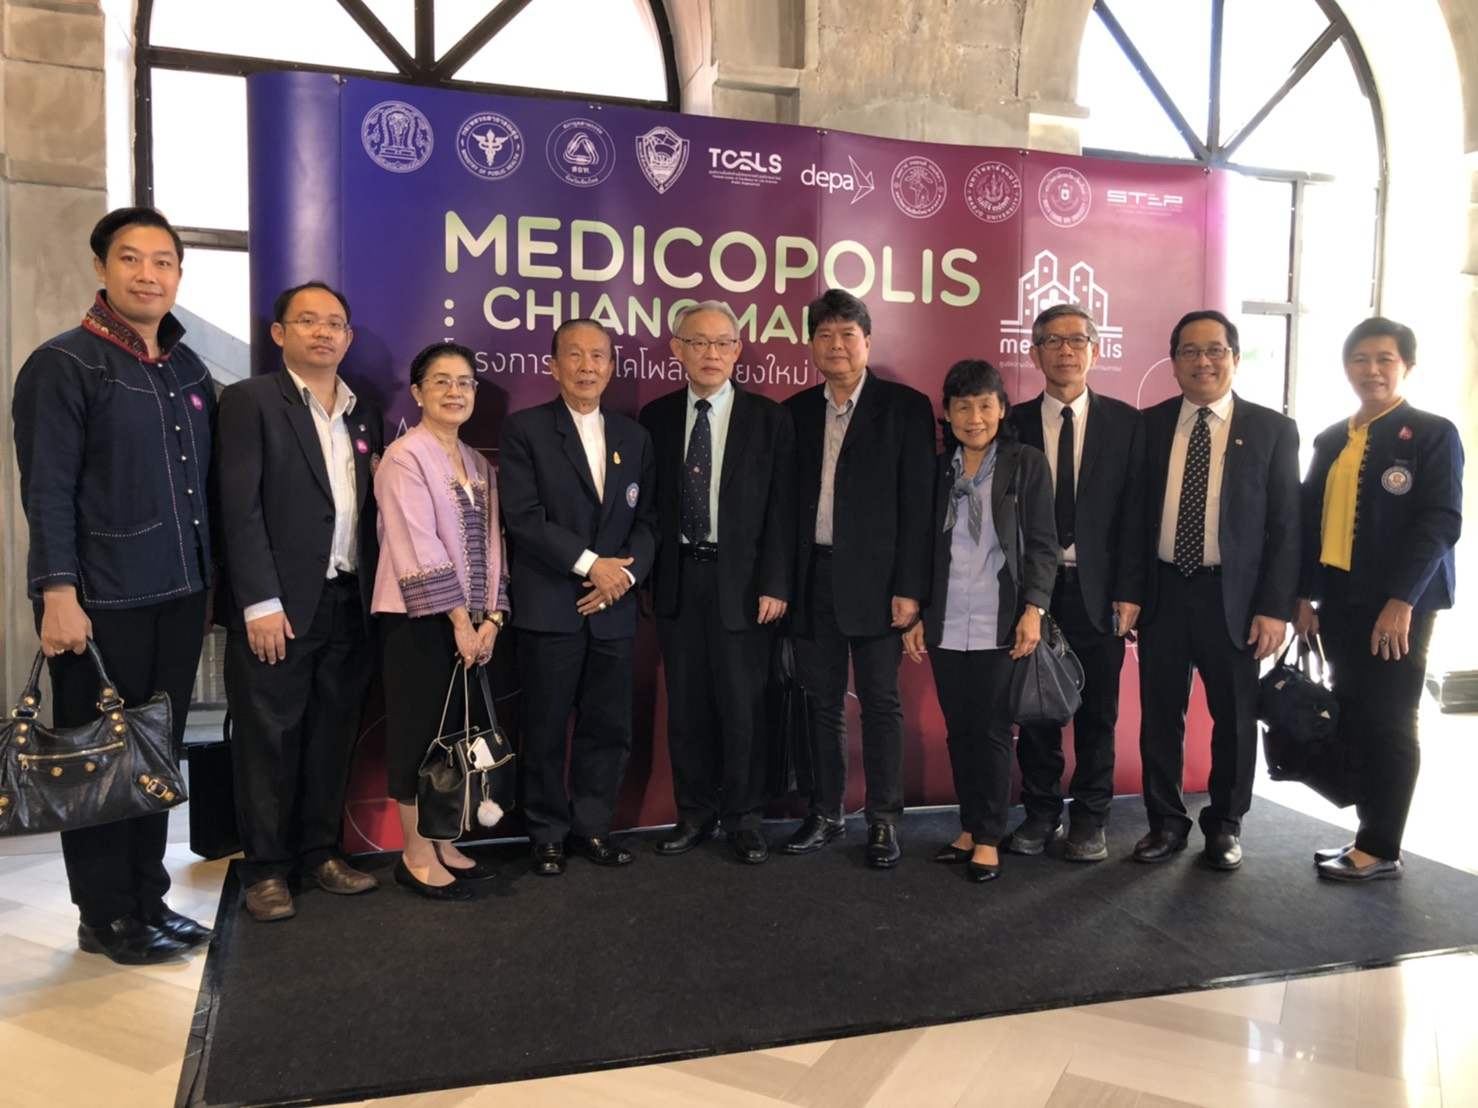 Professor Dr. Jiradej Manosroi and Professor Dr. Aranya Manosroi have participated in the Vej Nakorn Project (Medicopolis) MOU signing ceremony at Nimmam Convention Center – One Nimman, Chiang Mai, Thailand.